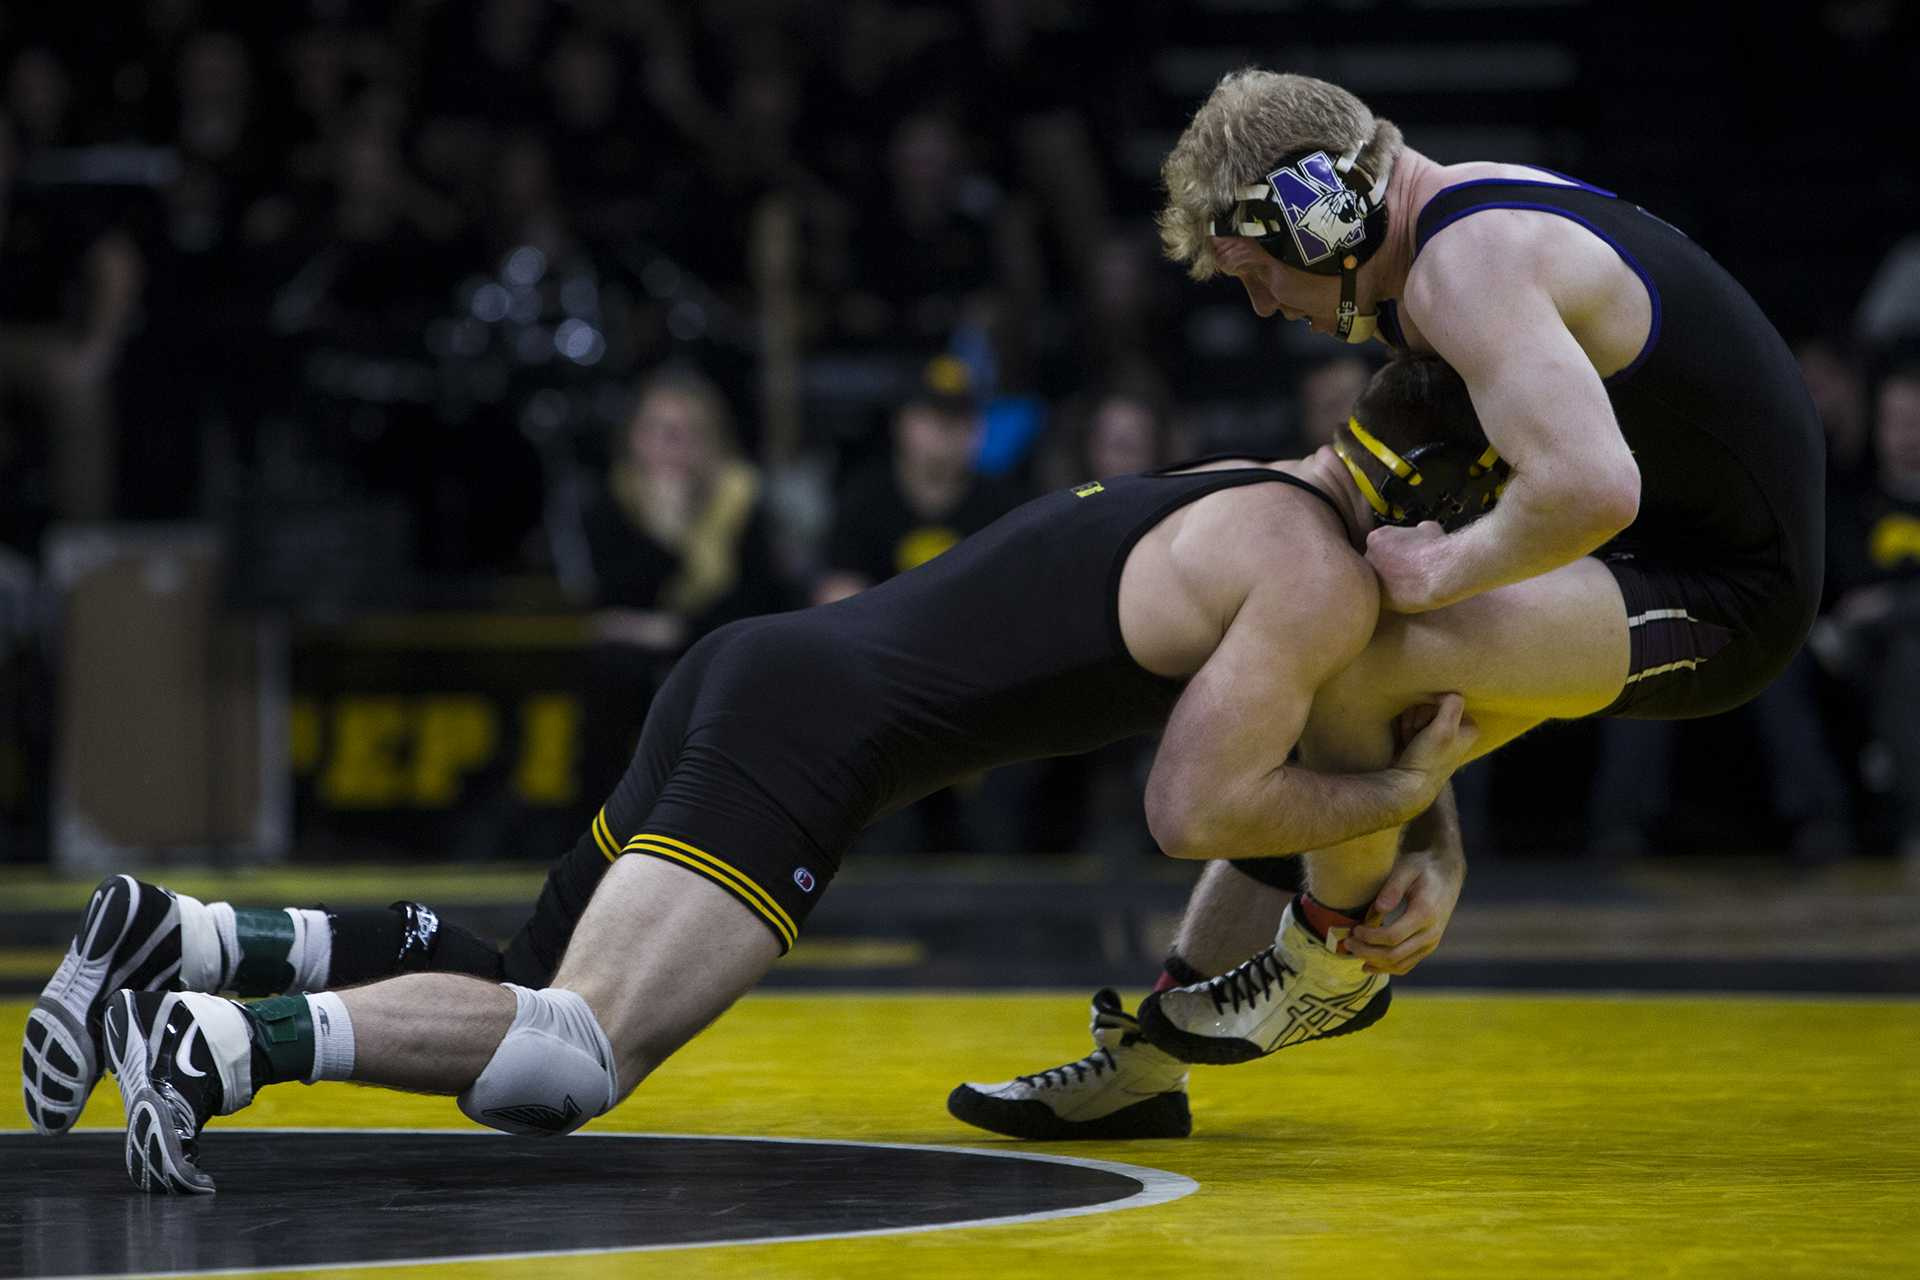 Iowa wrestling falls to top-ranked Penn State.